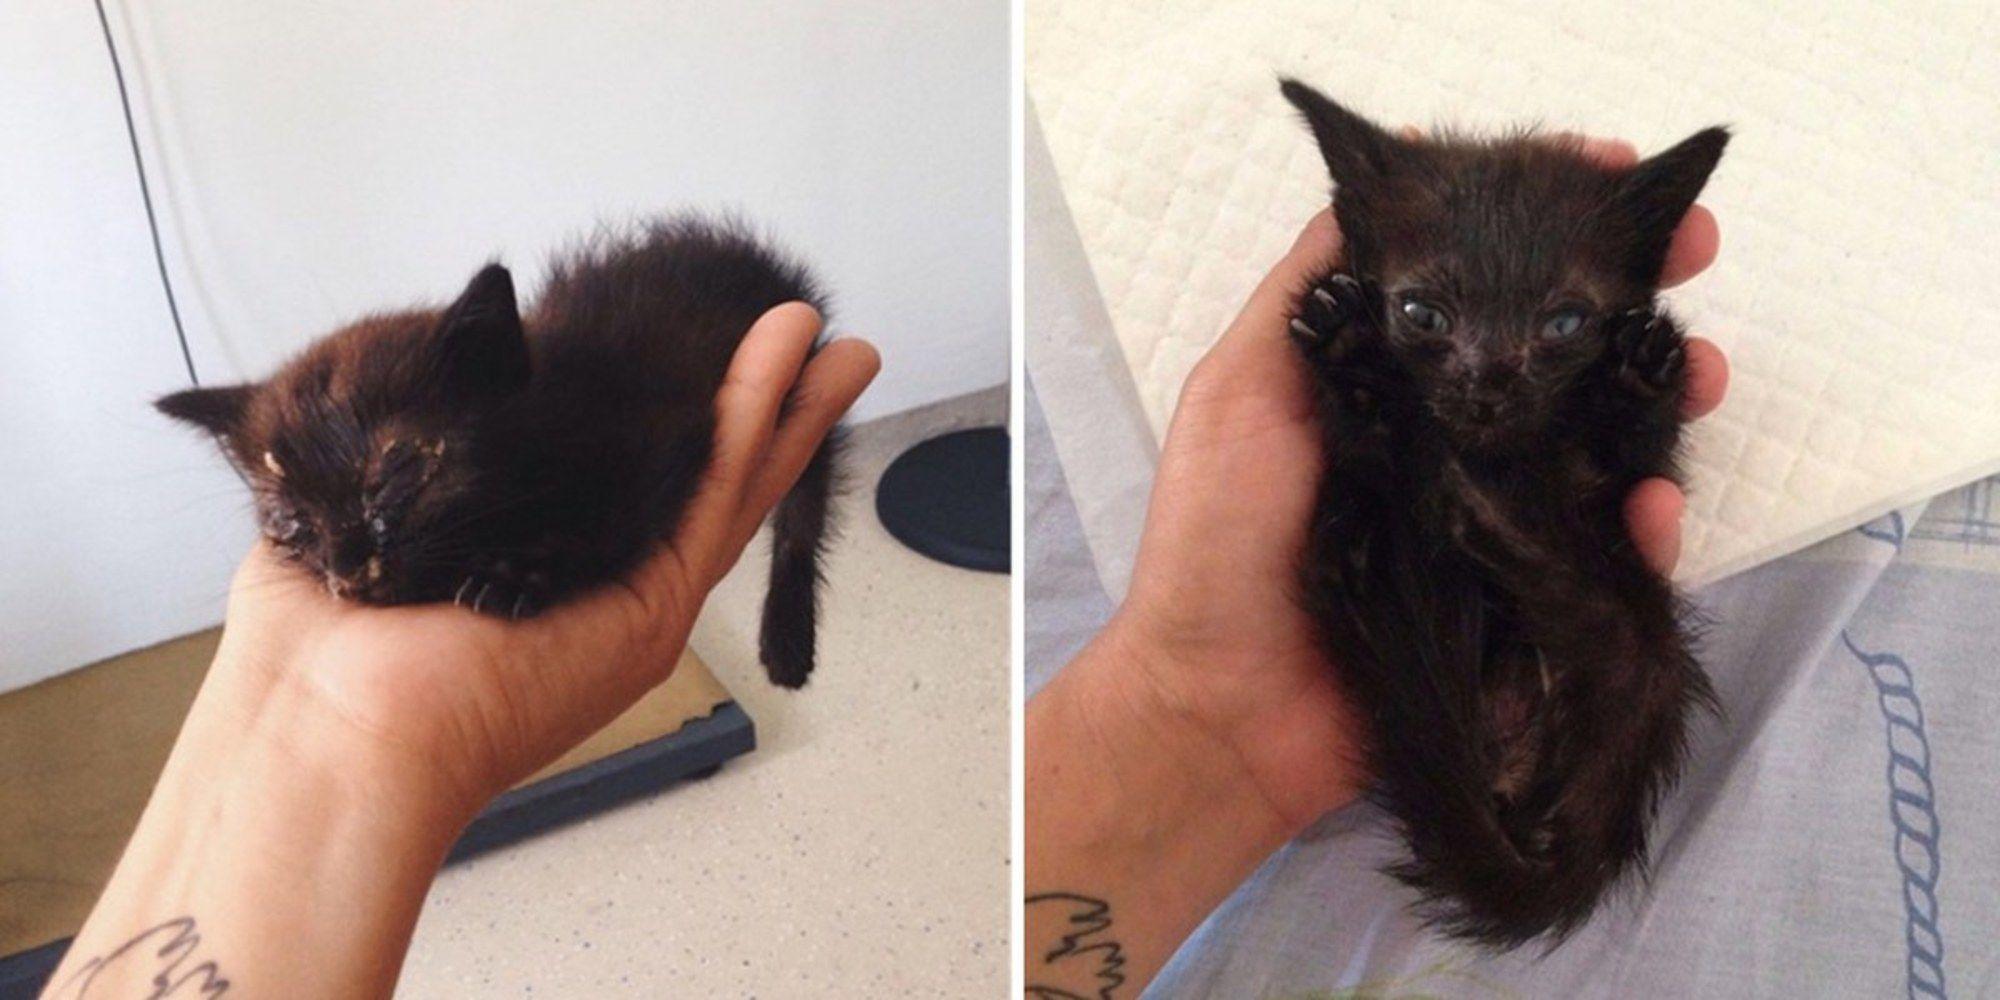 Woman And Her Dog Rescue Kitten Abandoned In Bushes What A Difference 2 Days Can Make Kitten Rescue Kittens Kitten Pictures